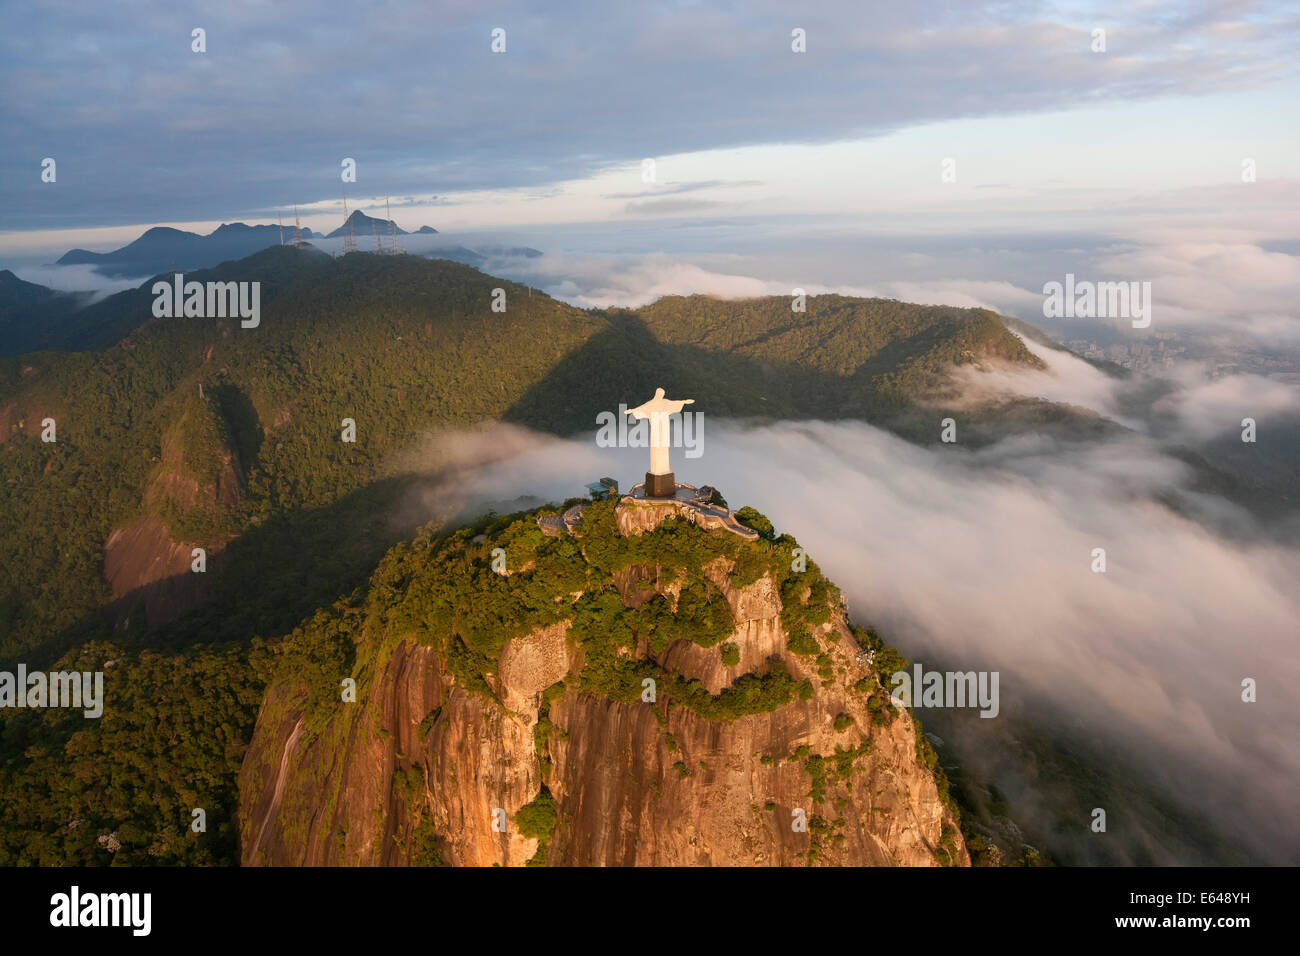 The giant Art Deco statue Jesus known as Cristo Redentor (Christ Redeemer) on Corcovado mountain in Rio de Janeiro Stock Photo